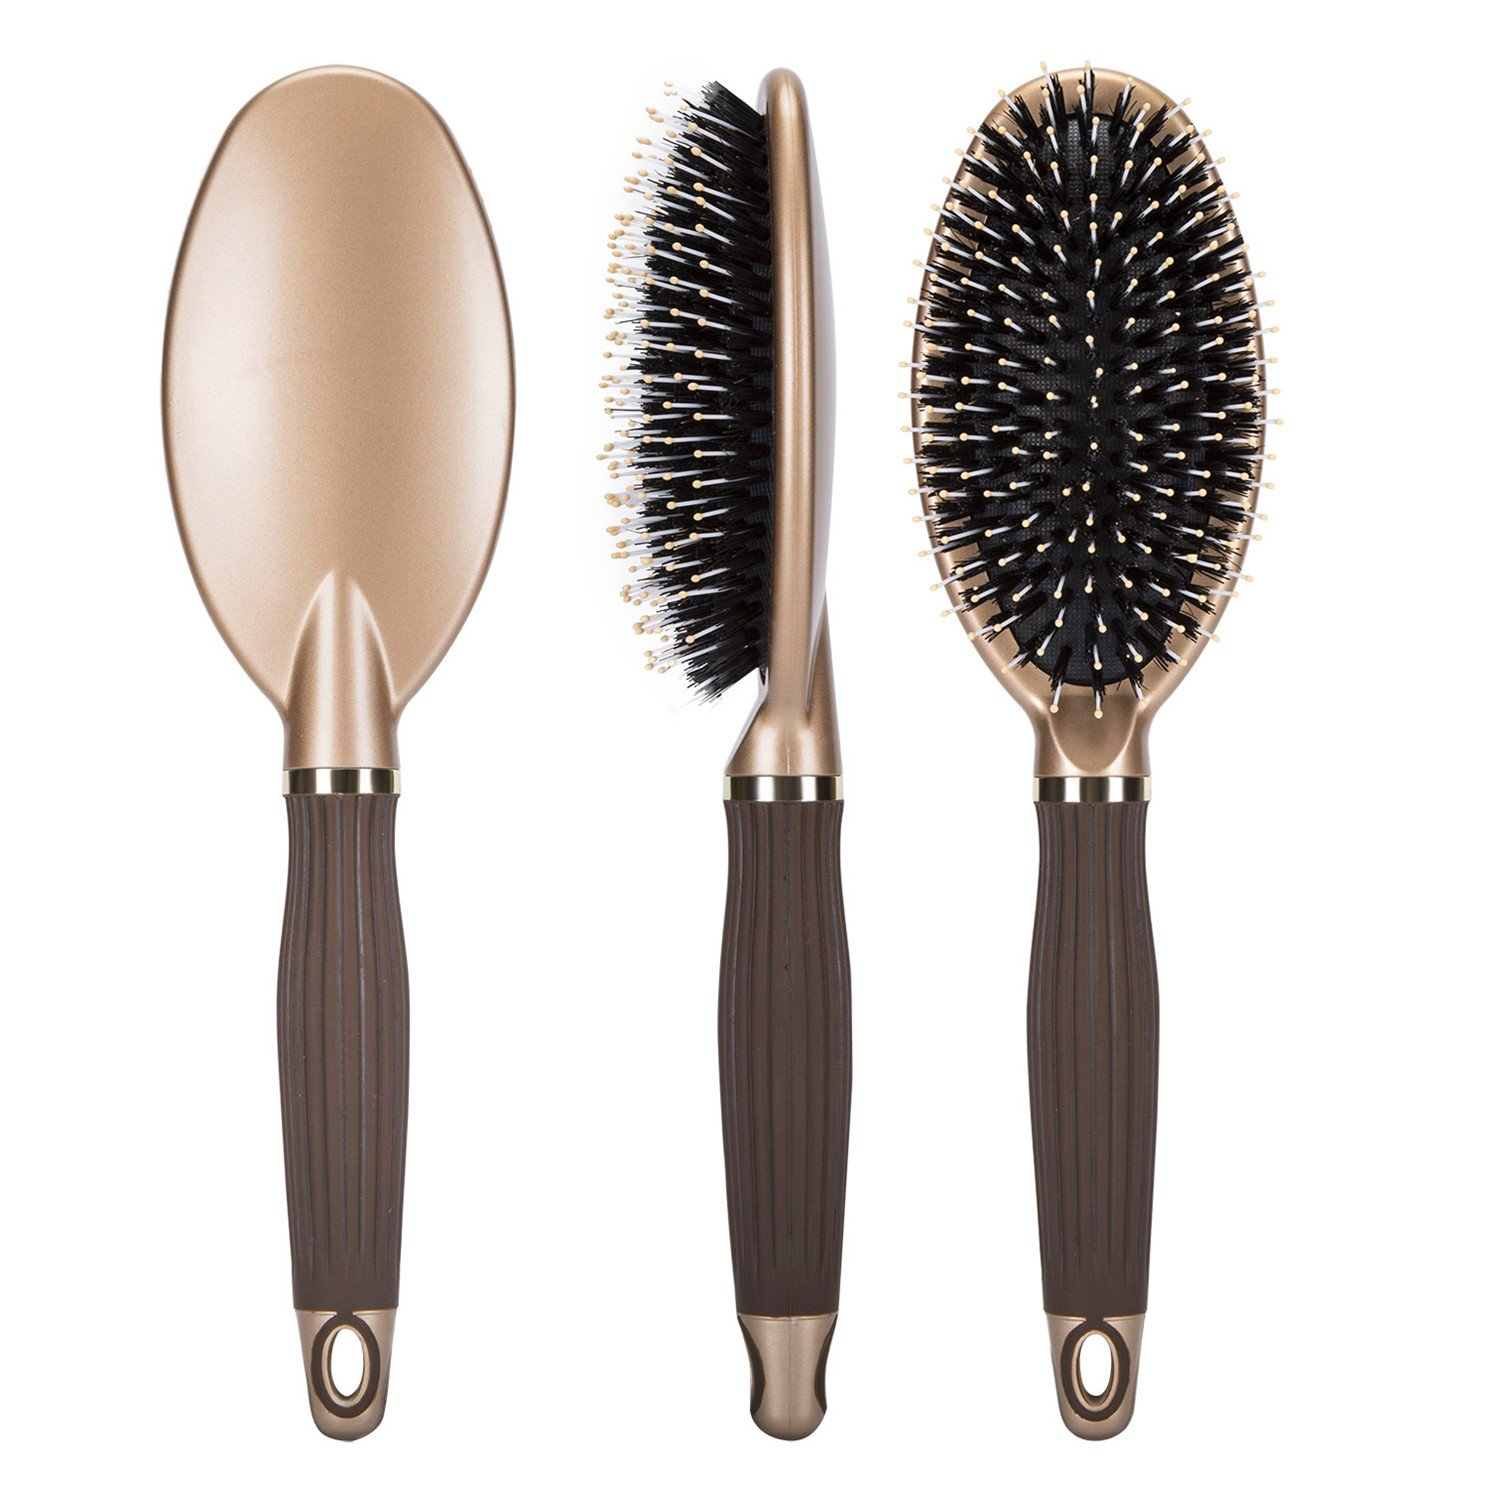 Boar Bristle Paddle Hair Brush,Detangling Brush for Straightening &Smoothing Hair,Designed for Women& Men,for Wet, Dry, Thick, Thin, Curly hair by Janrely